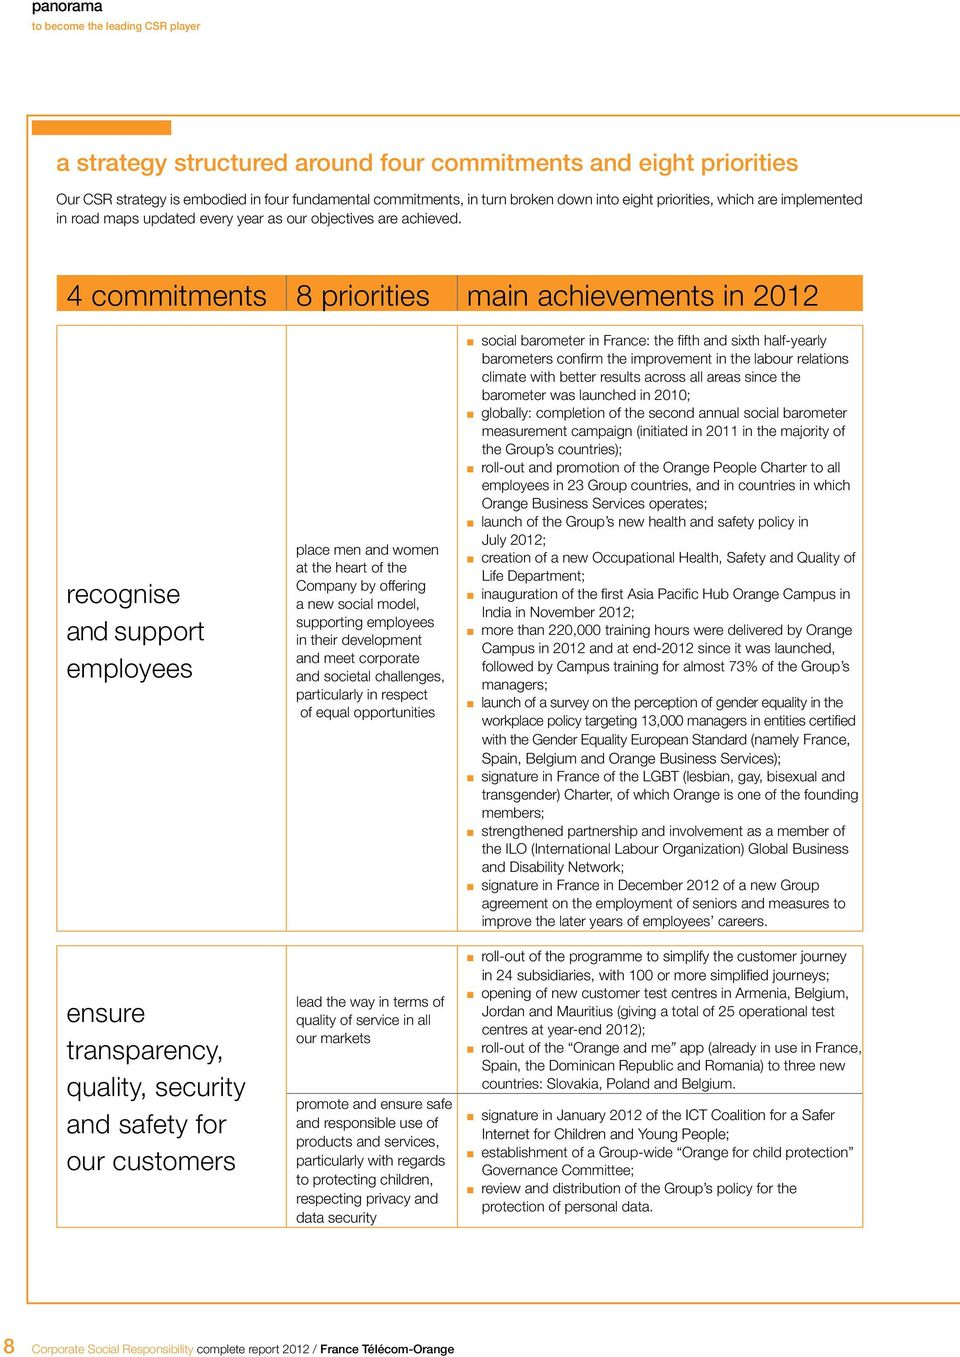 4 commitments 8 priorities main achievements in 2012 recognise and support employees ensure transparency, quality, security and safety for our customers place men and women at the heart of the